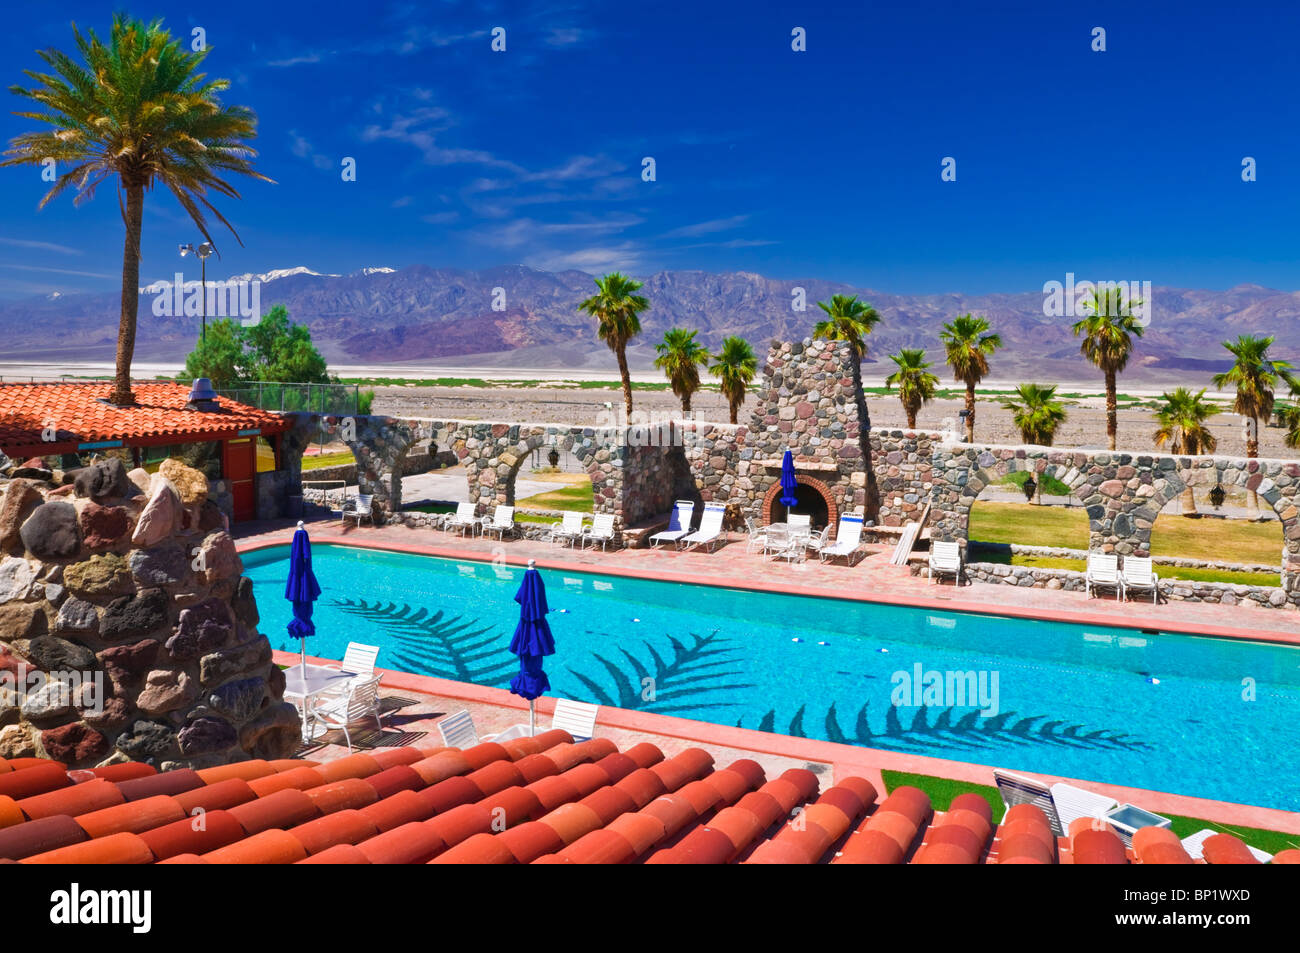 The Swimming Pool And Tile Roof At Furnace Creek Inn